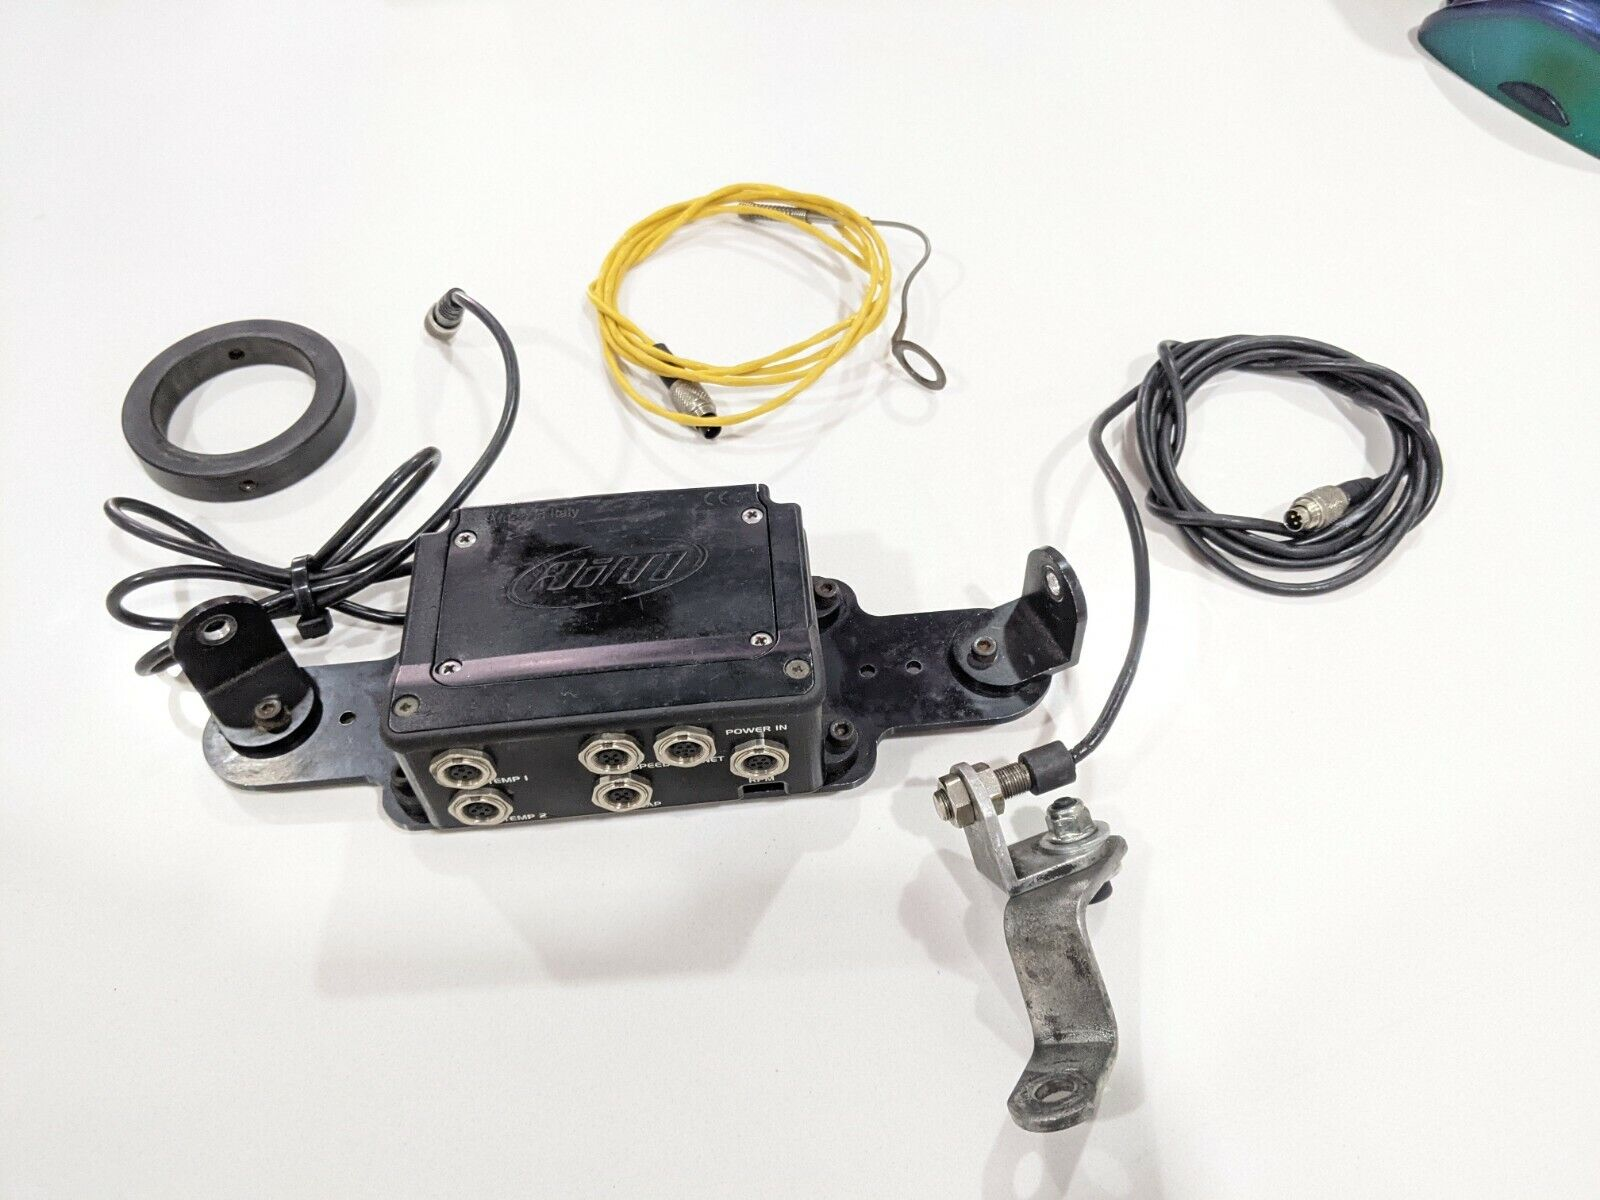 Image 11 - Mychron 4 Expansion Box Gold with speed and Temp sensors, go-kart, cart, gauge